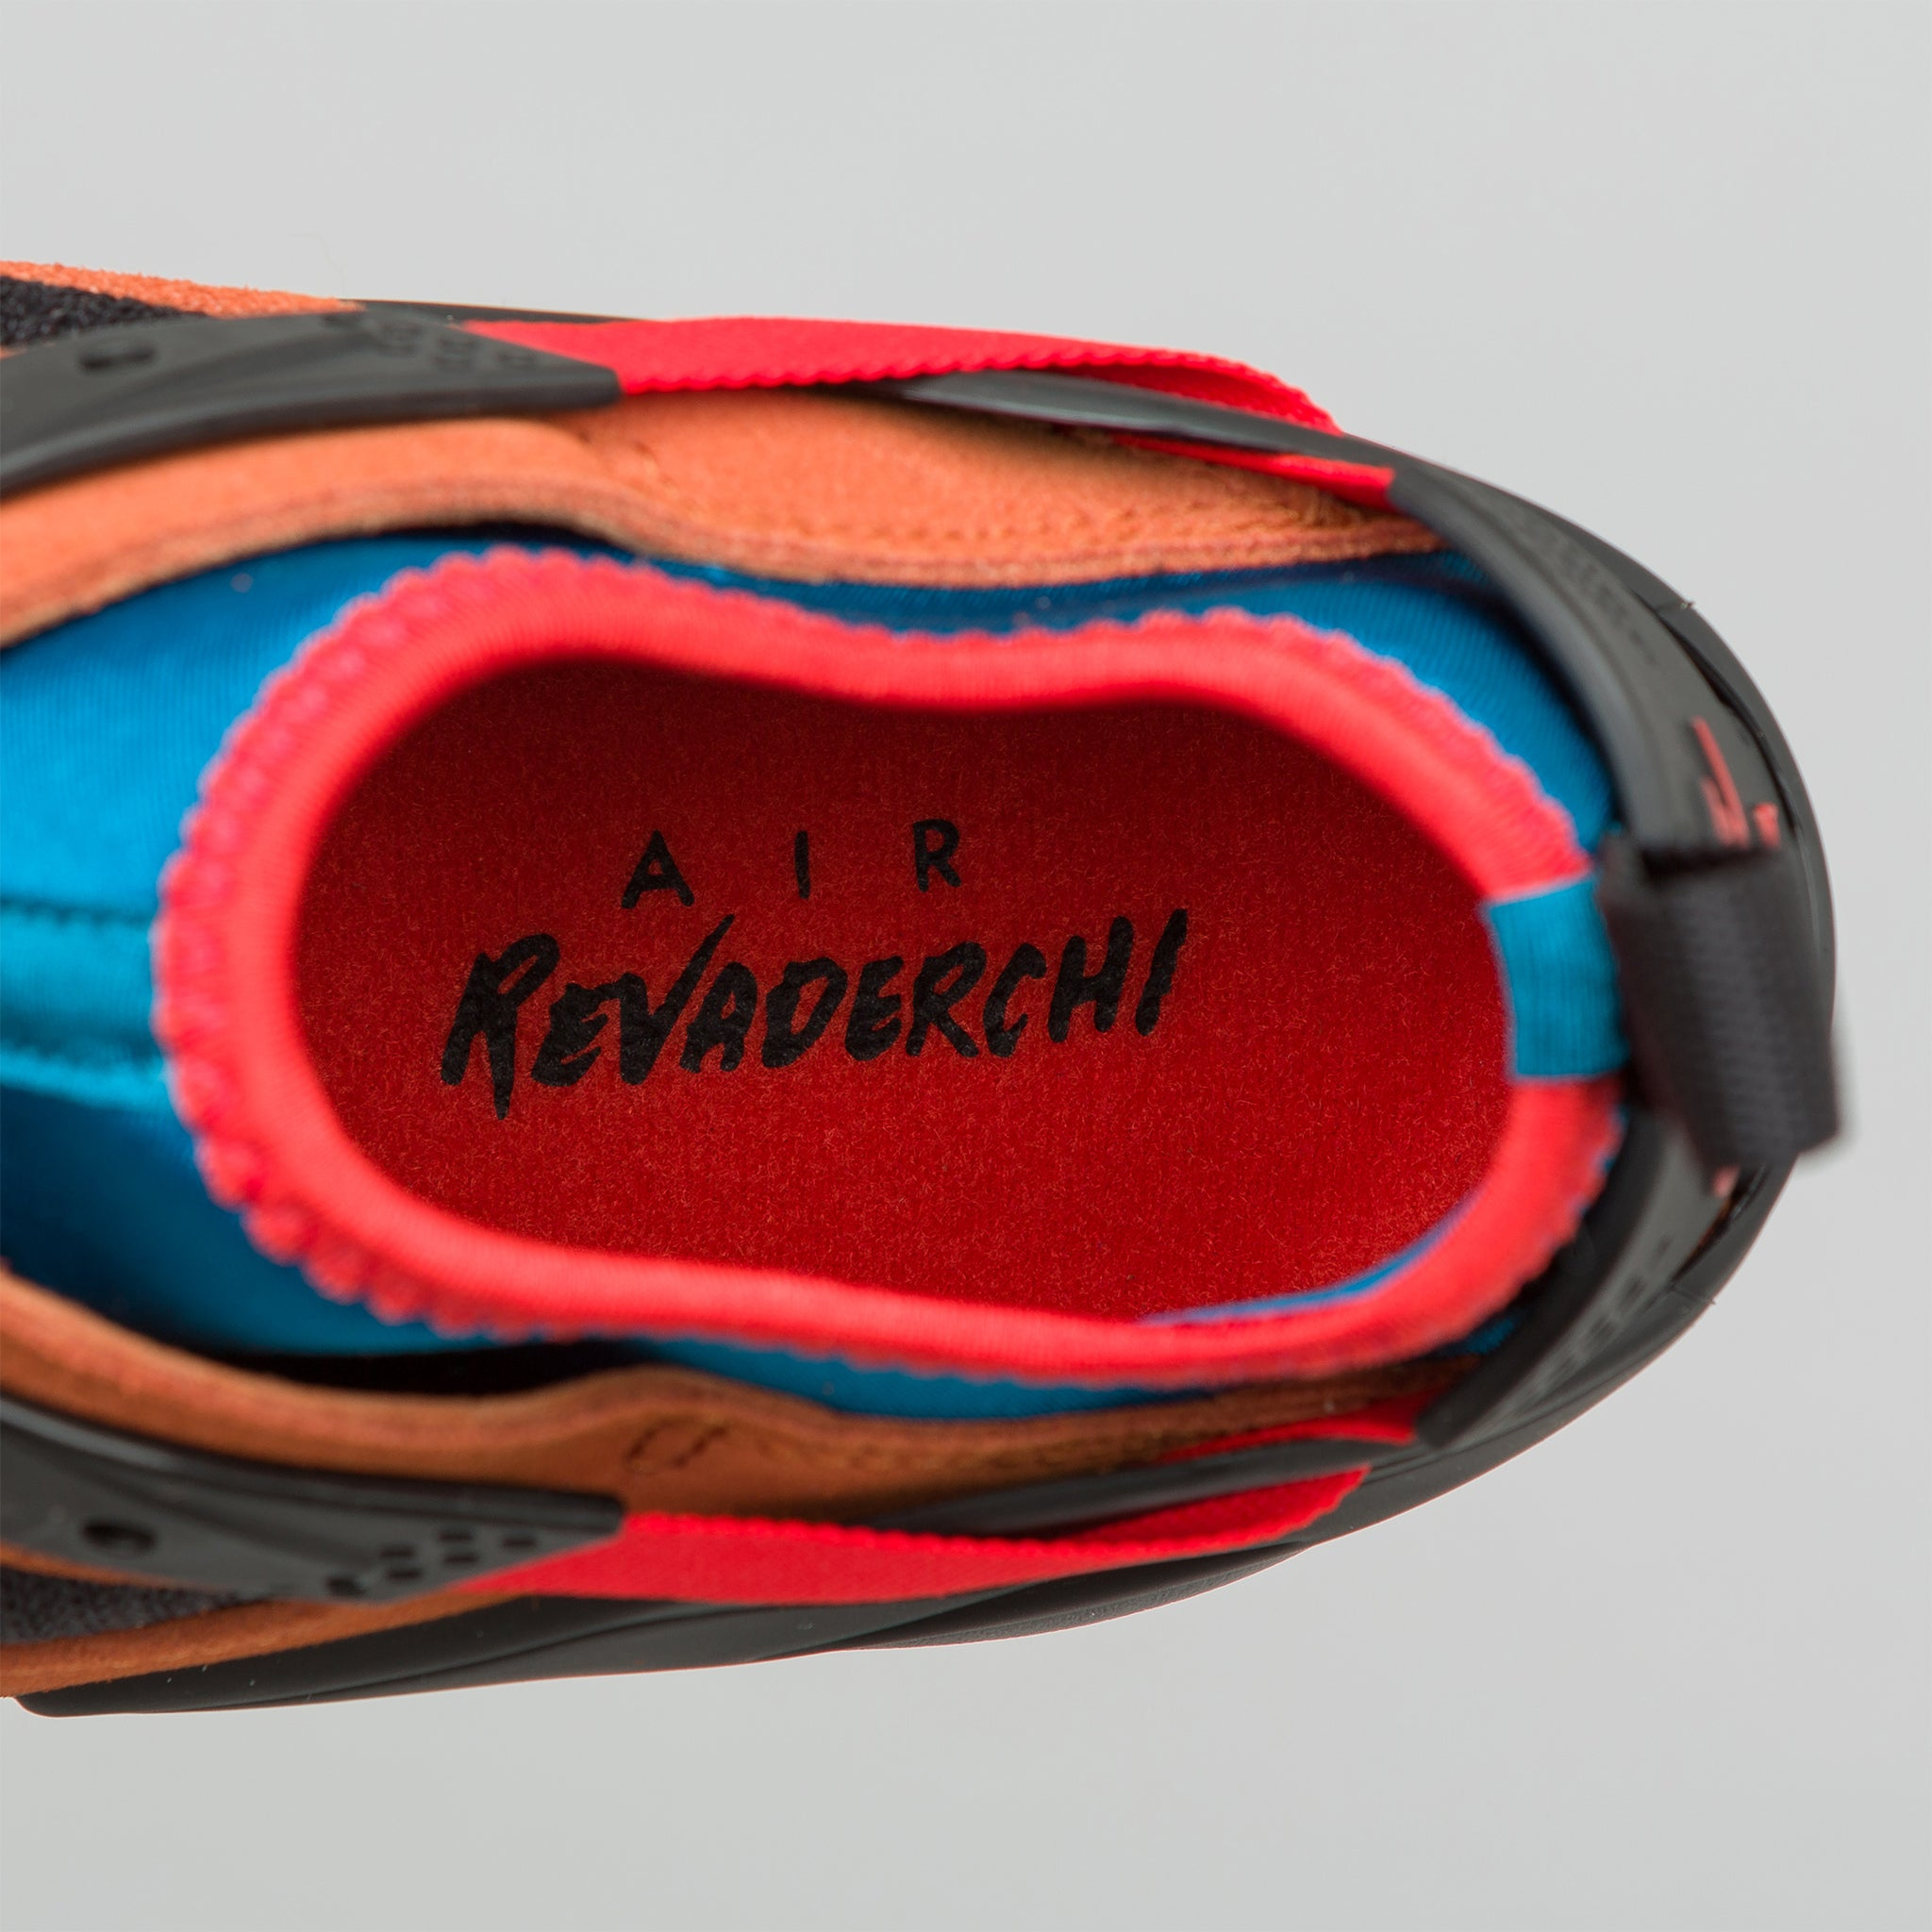 Air Revaderchi in Black/Habanero Red/Russet